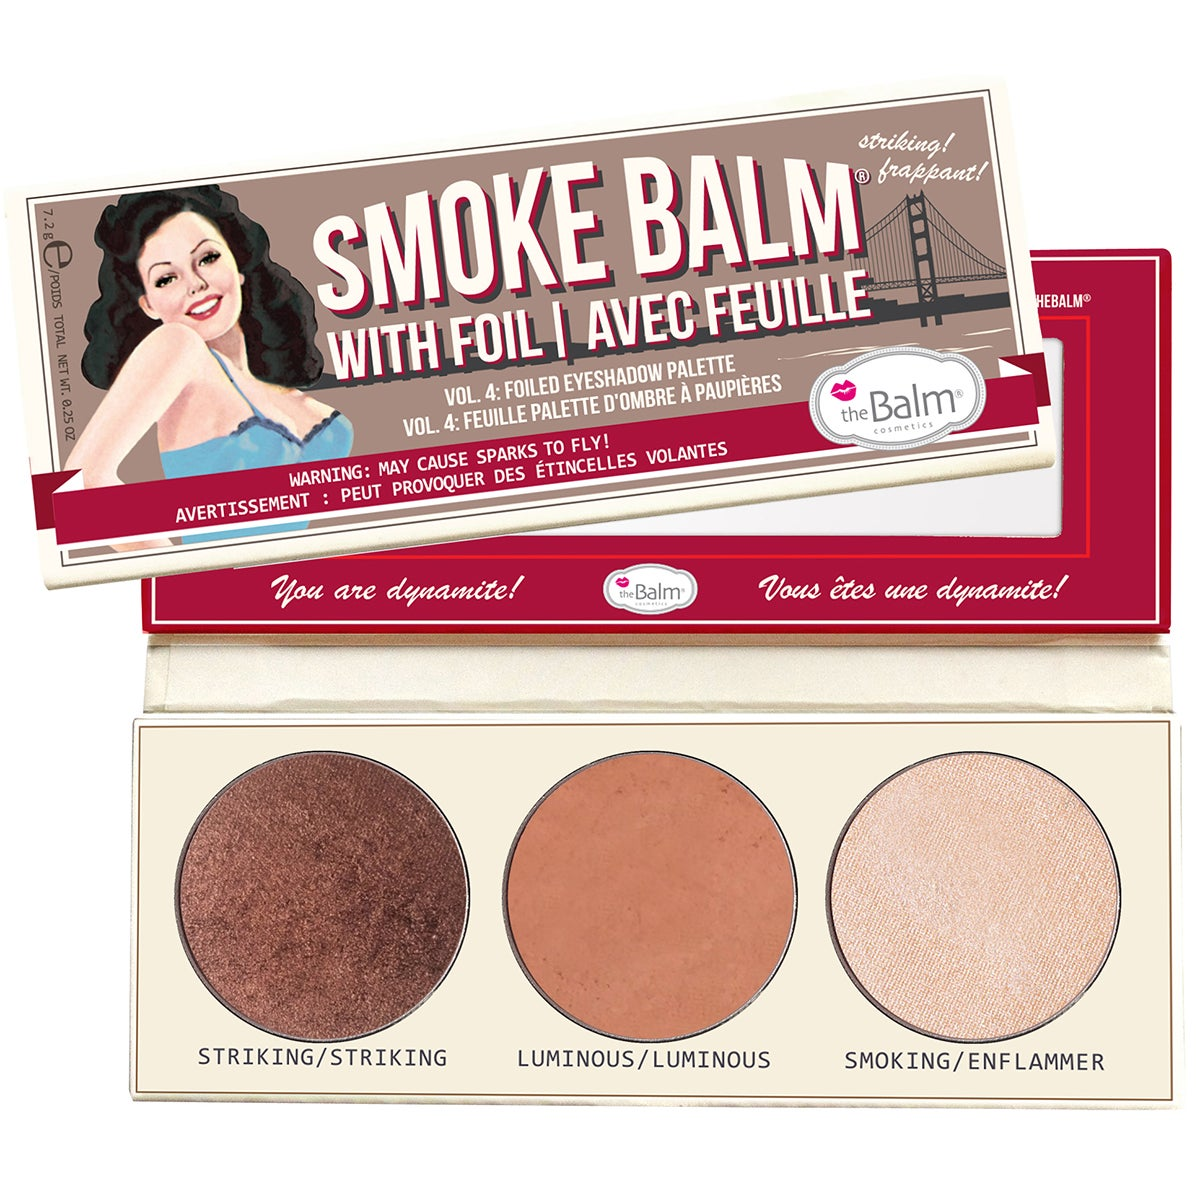 the Balm The Balm SmokeBalm Vol. 4